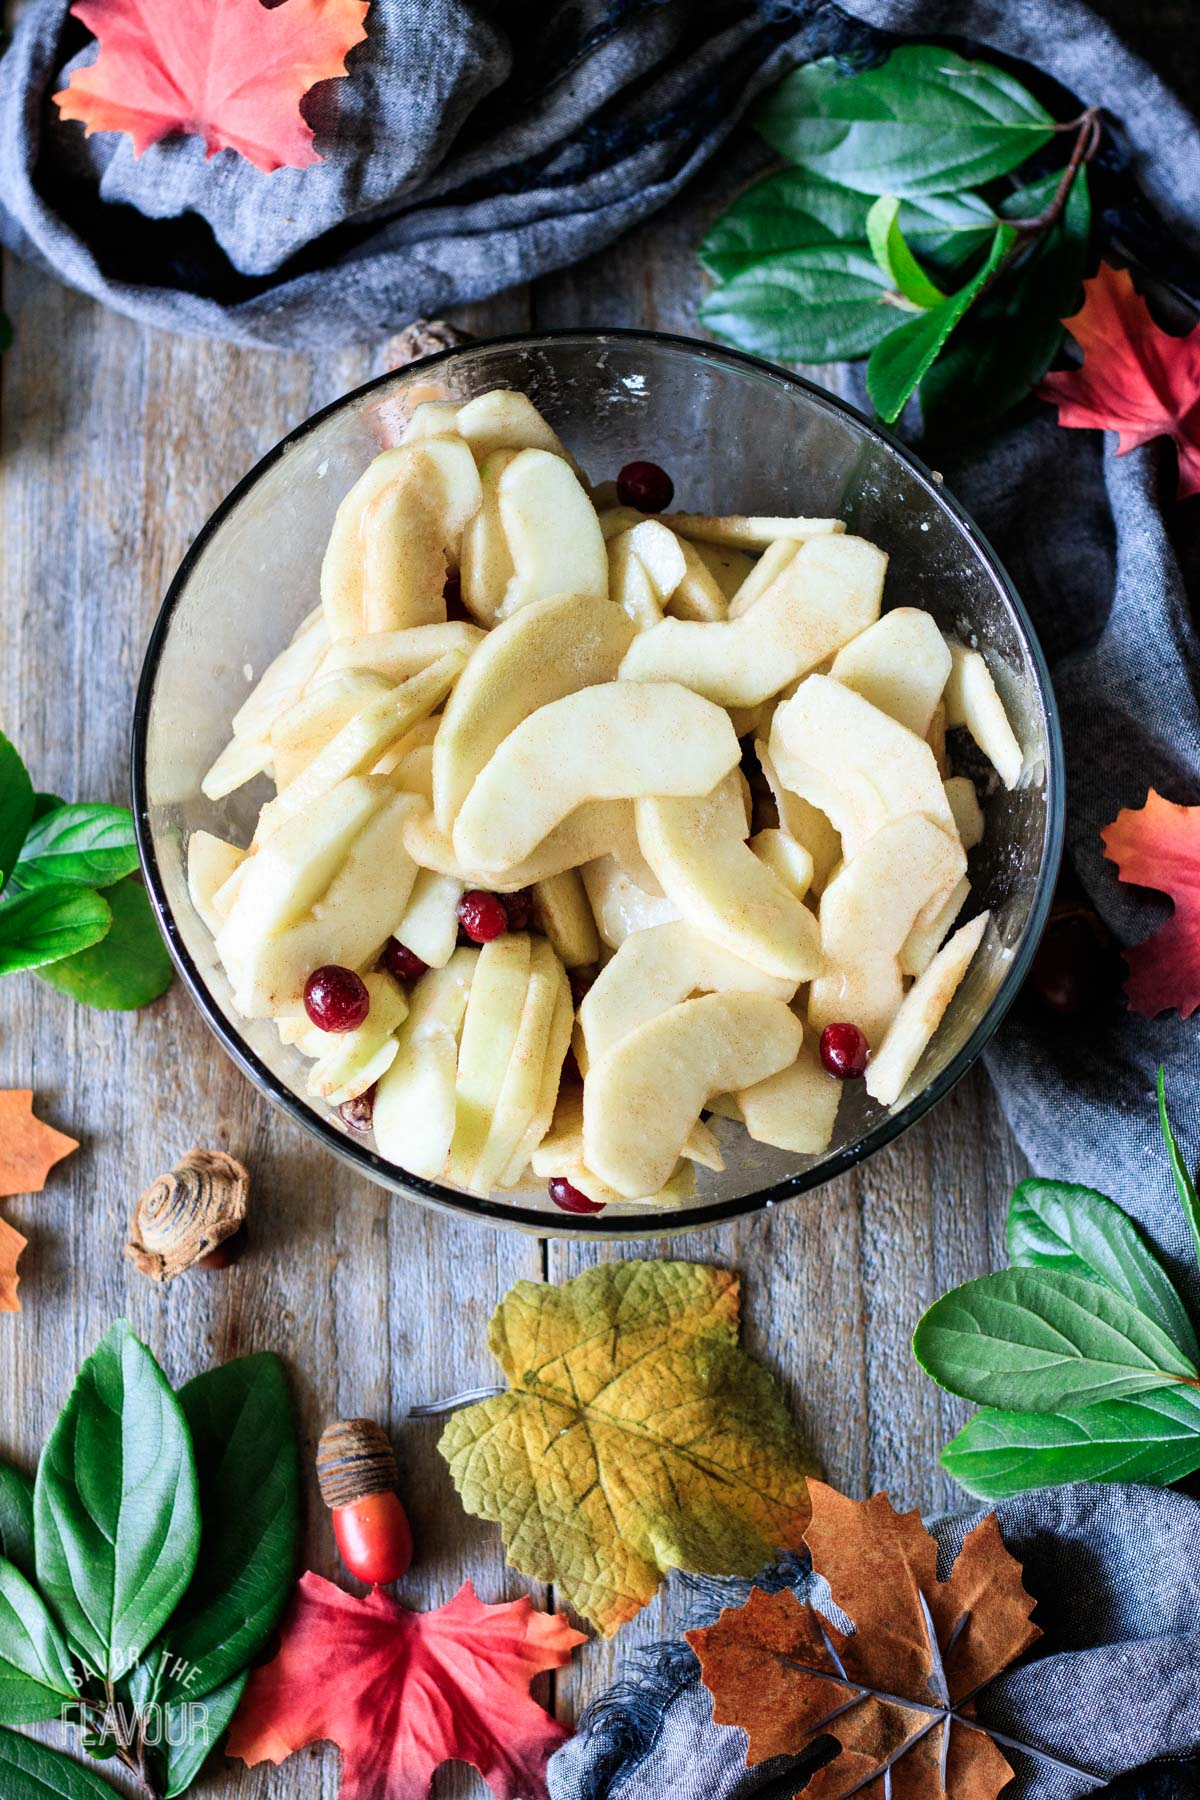 bowl of apple slices mixed with cranberries and cinnamon